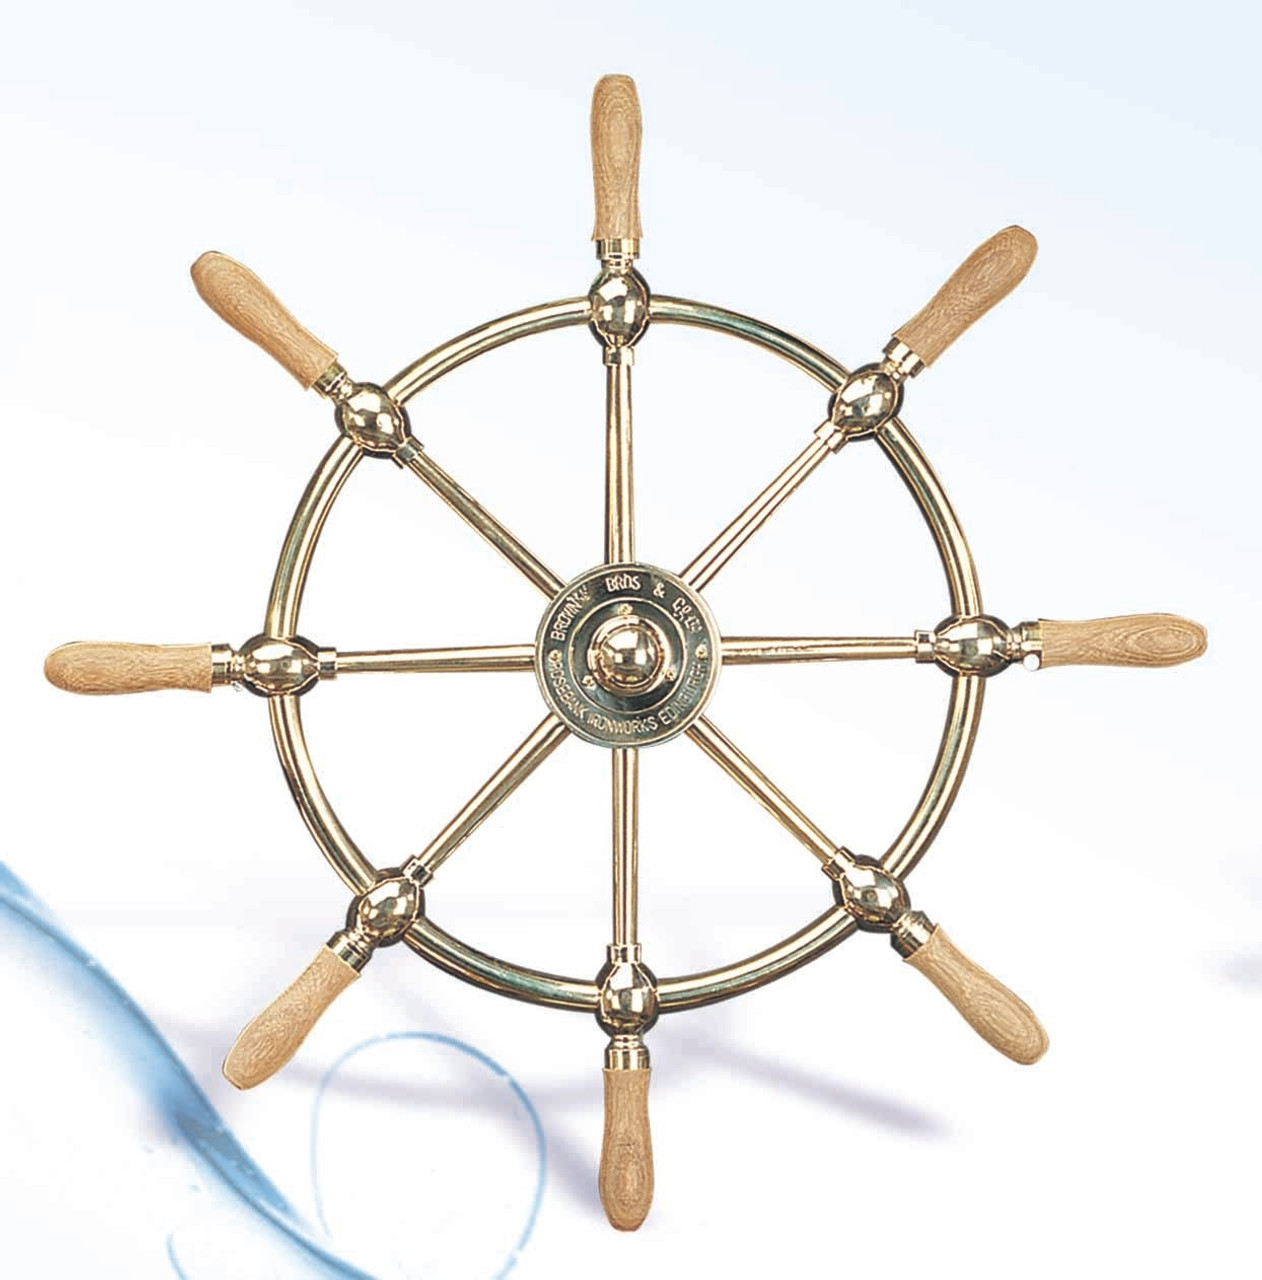 "(SW-104 24"") 24"" Brass Ship Wheel with Wooden Spokes"